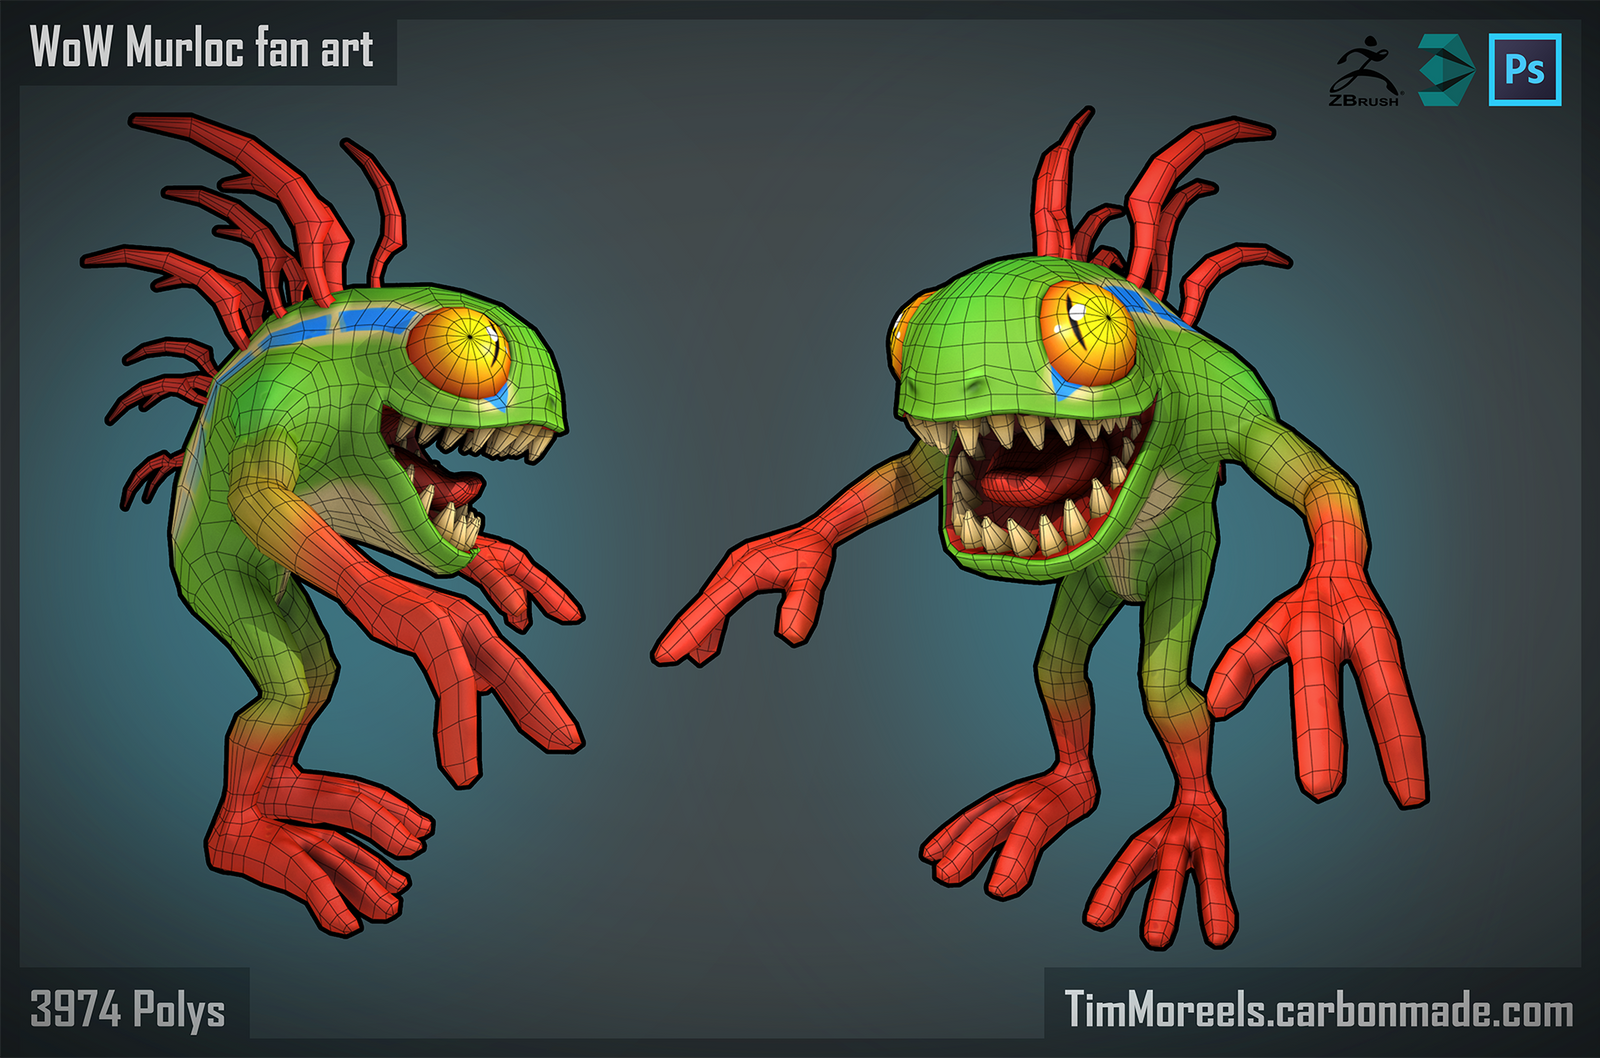 wire_render_low_poly_murloc_by_madgunslinger-d8ht53f.png